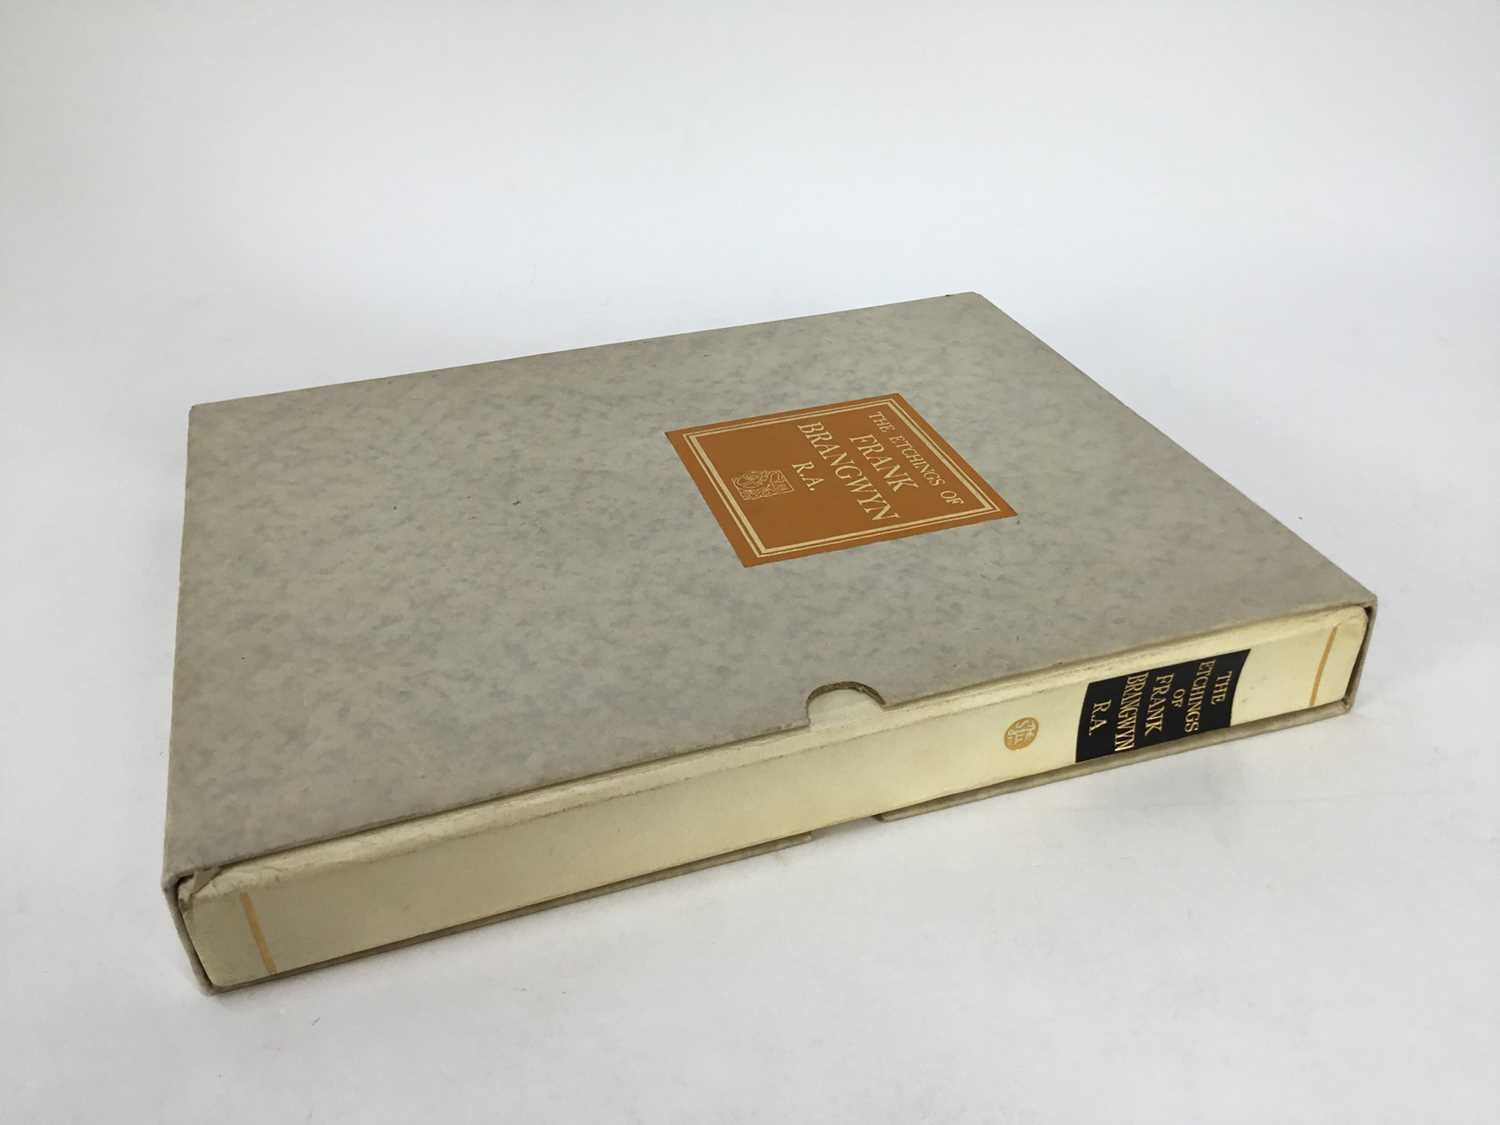 Book - The Etchings of Frank Brangwyn, R.A. A Catalogue Raisonne By W. Gaunt, limited edition 10/125